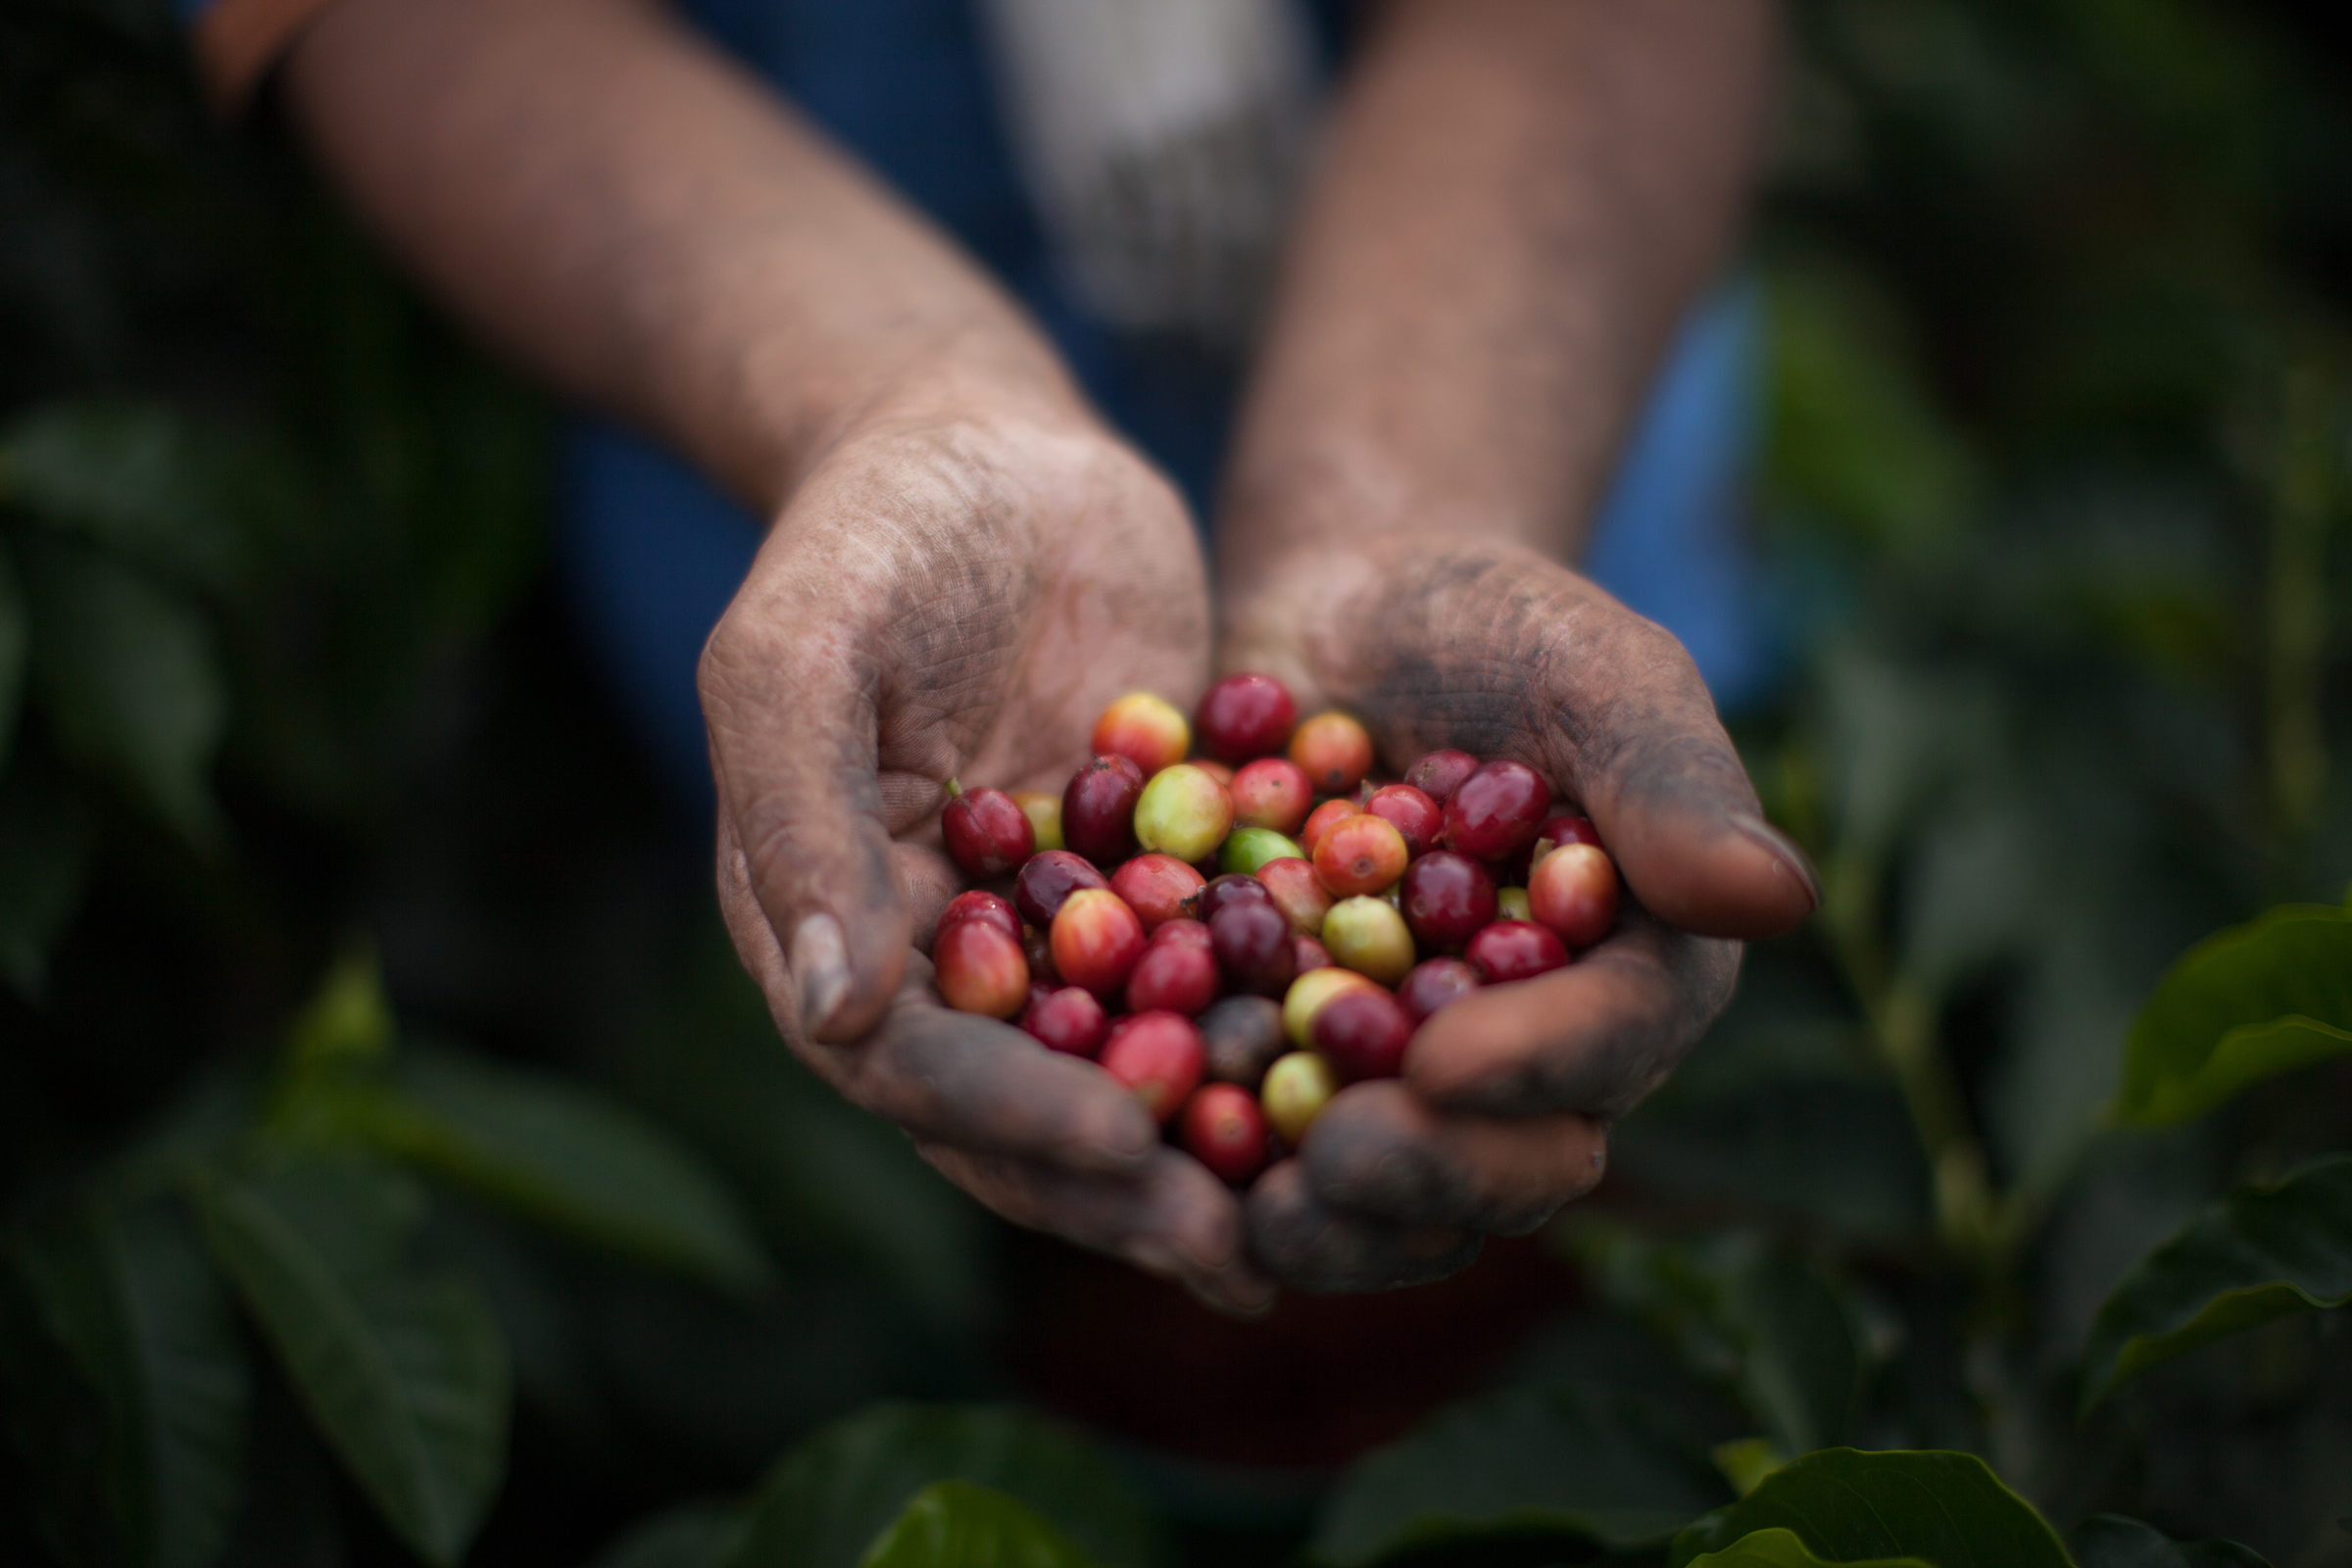 Freddy holds a handful of freshly-picked coffee cherries. Max Havelaar Switzerland works with Colombian coffee producer Cooperativa de Caficultores de Manizales on Fairtrade-certified coffee production.